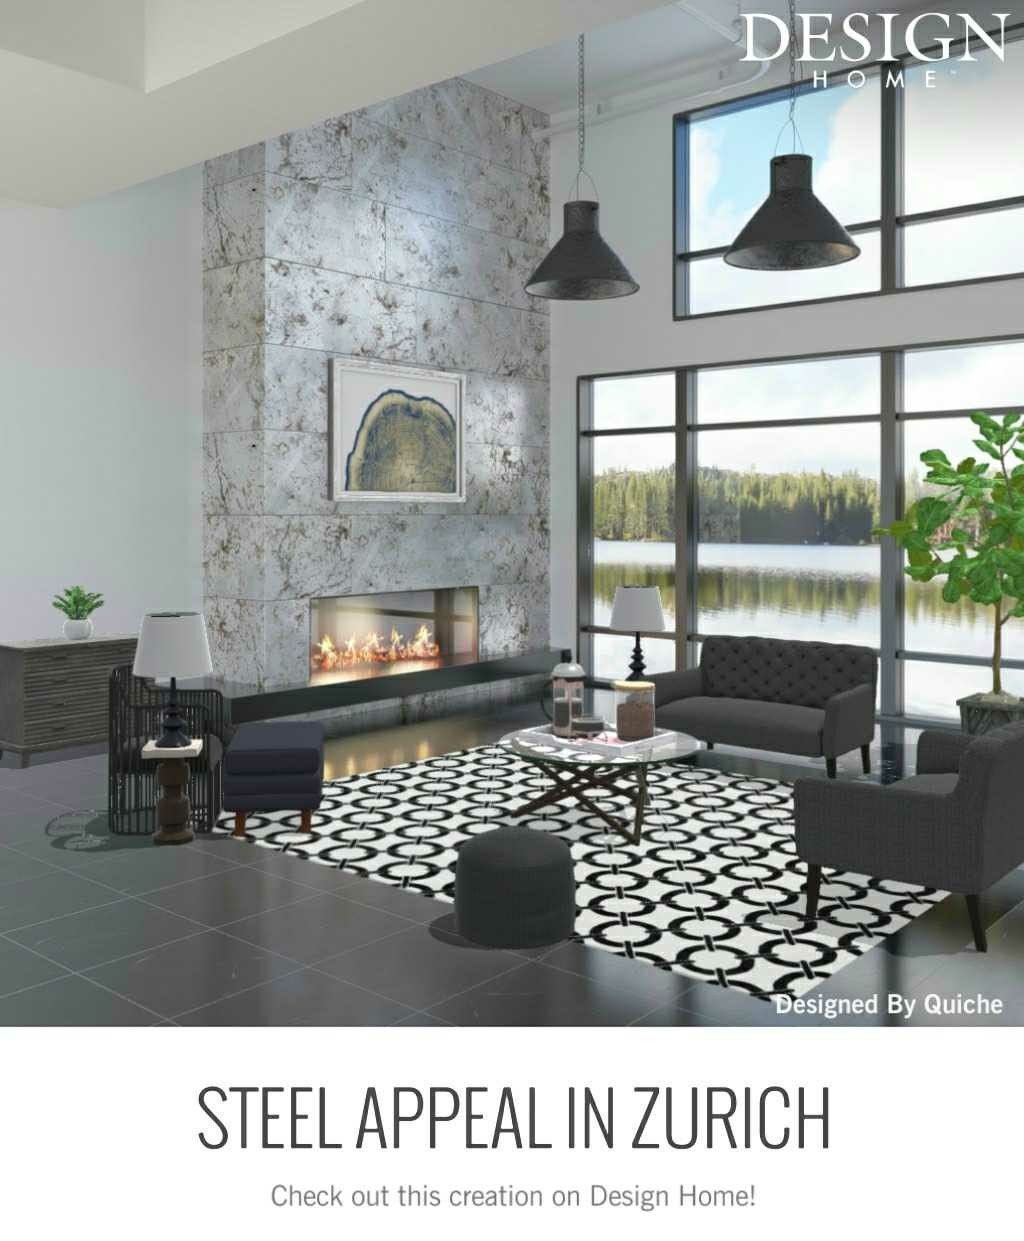 Pin By Just Quiche On Design Home In 2020 With Images Design